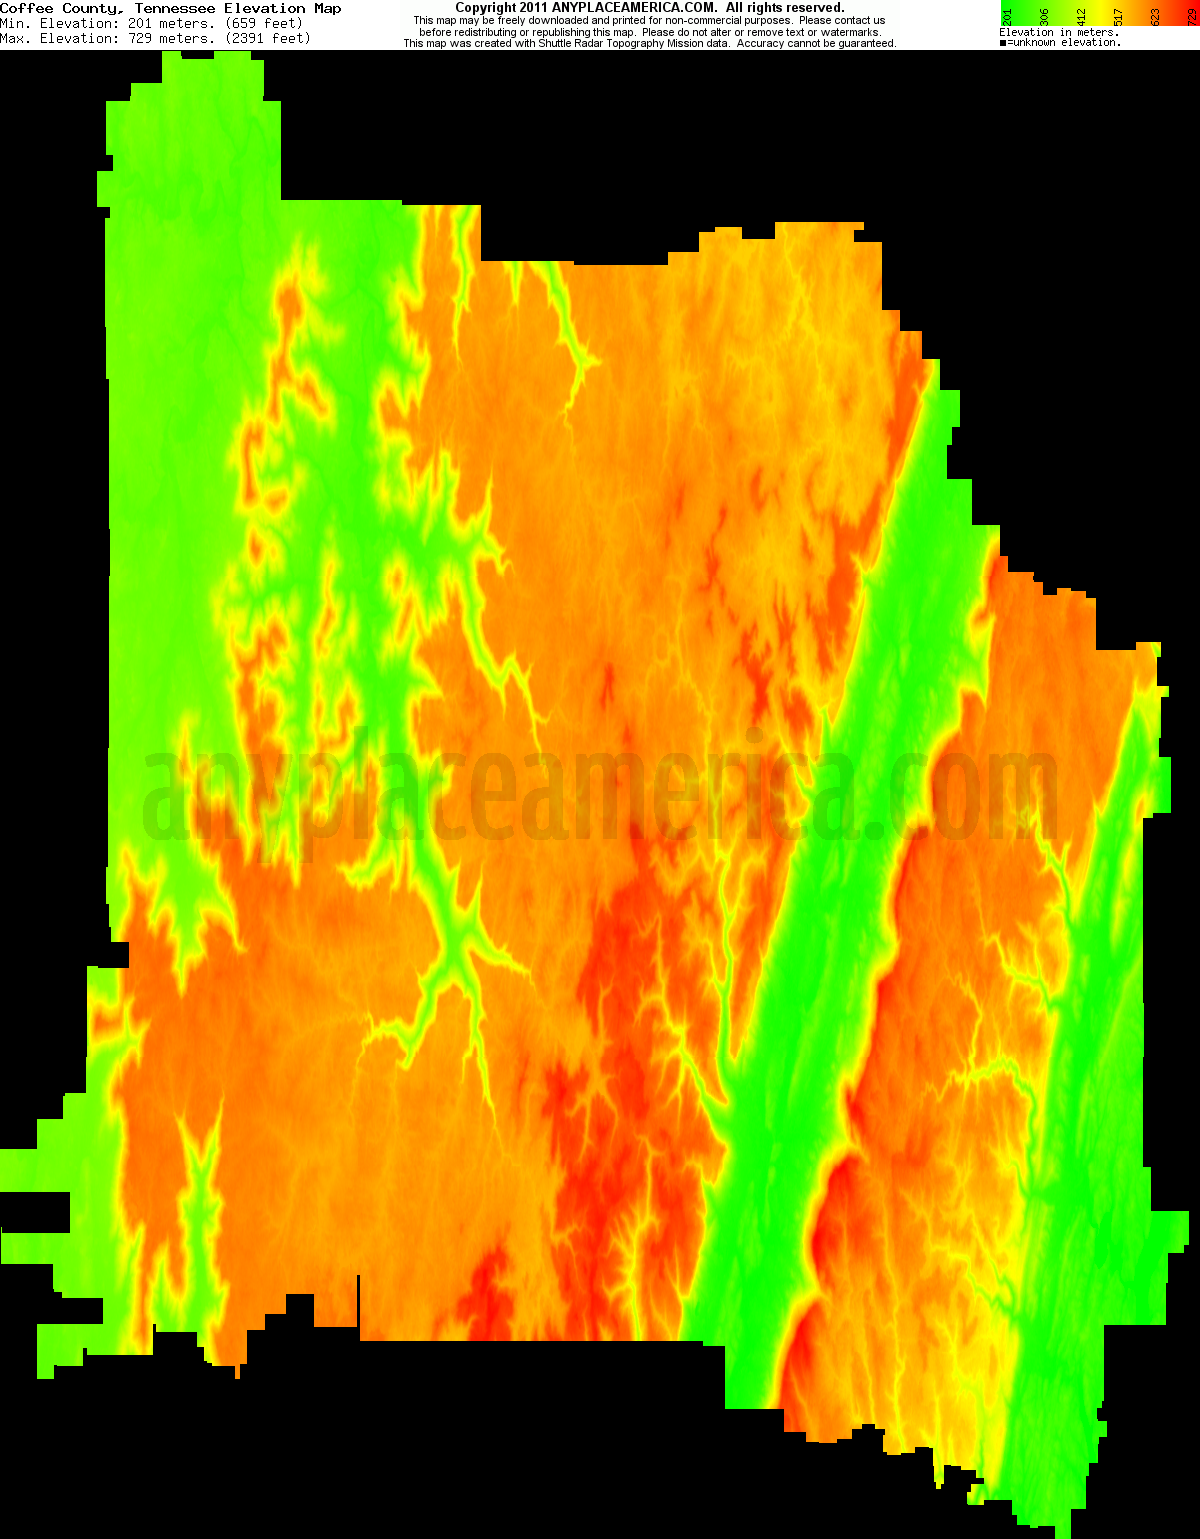 Tennessee coffee county hillsboro - Download Coffee County Elevation Map